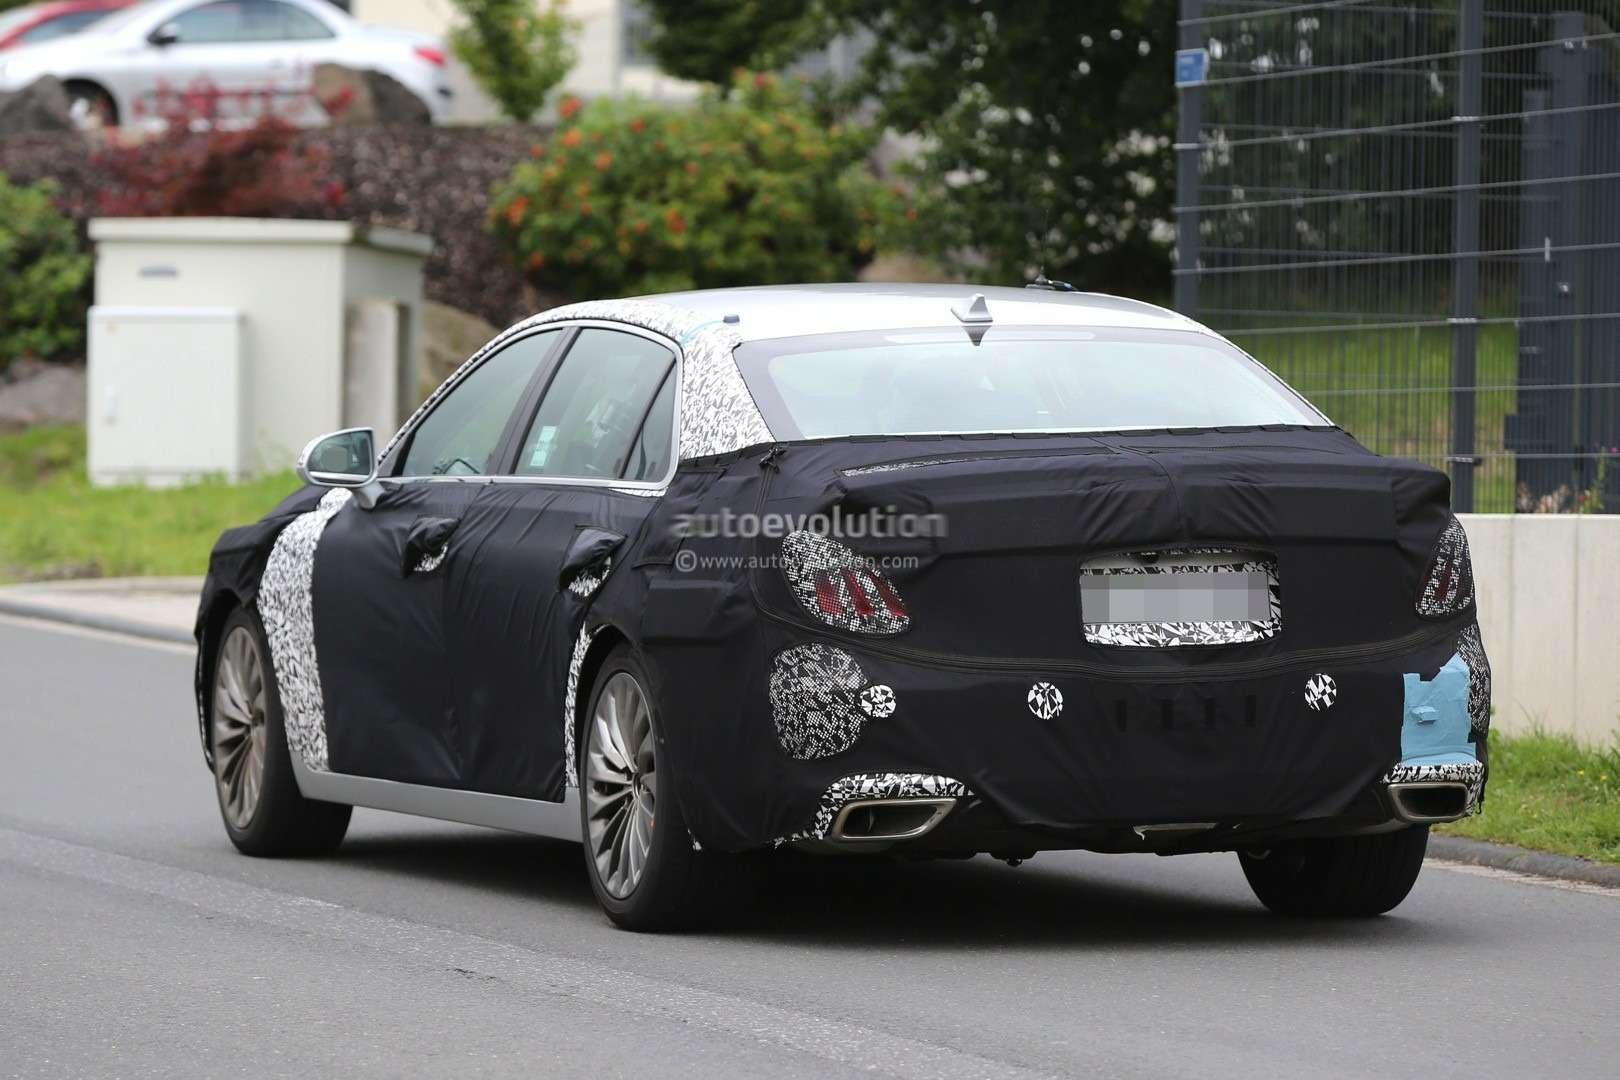 2017-hyundai-equus-spied-out-testing-in-germany-photo-gallery_6